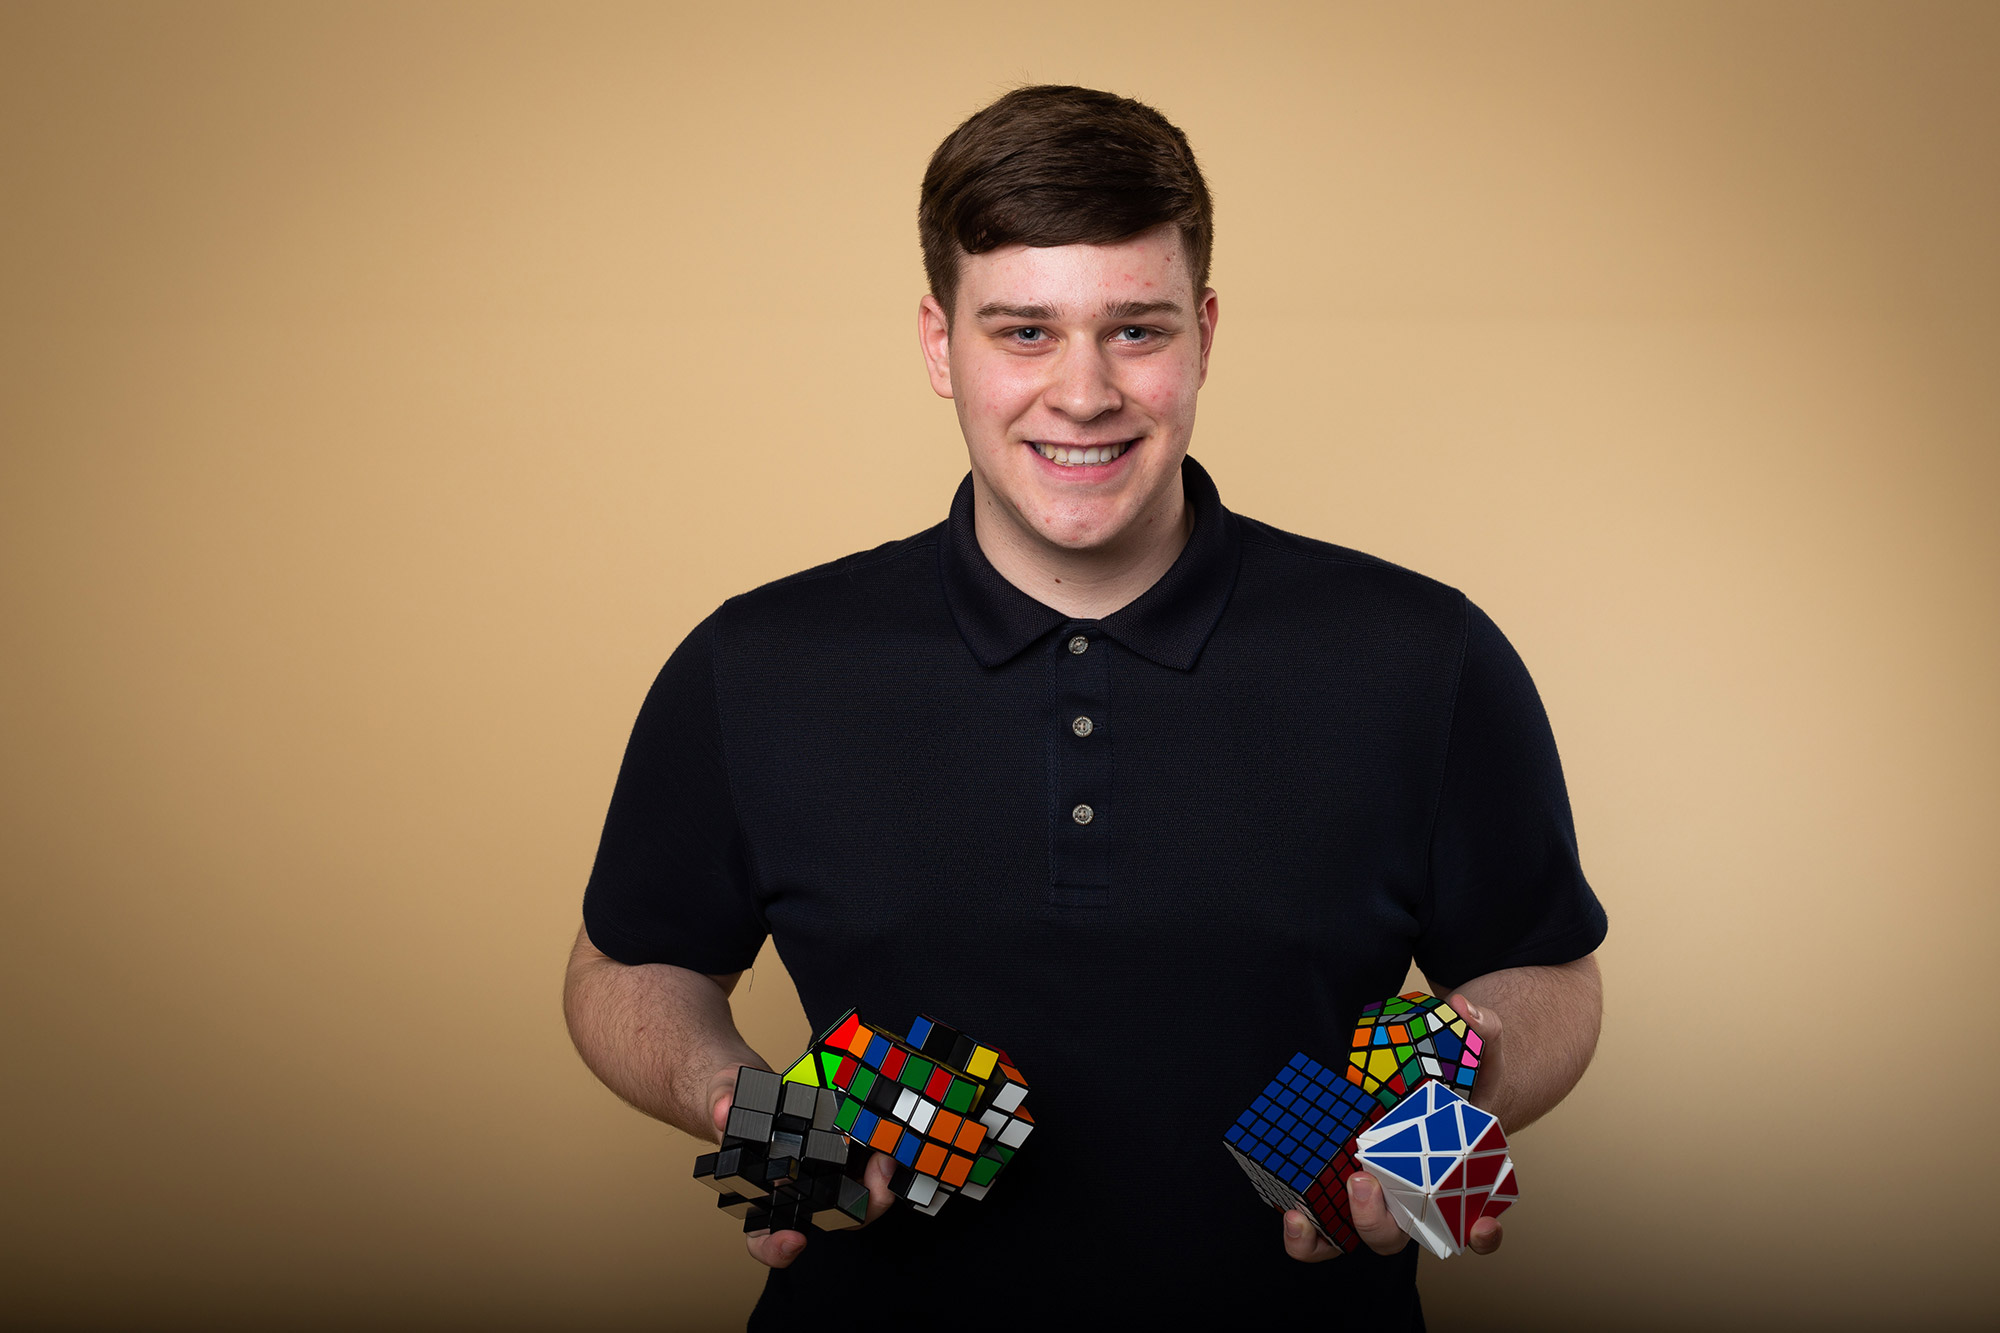 Jason Wien holds Rubik's cube type games